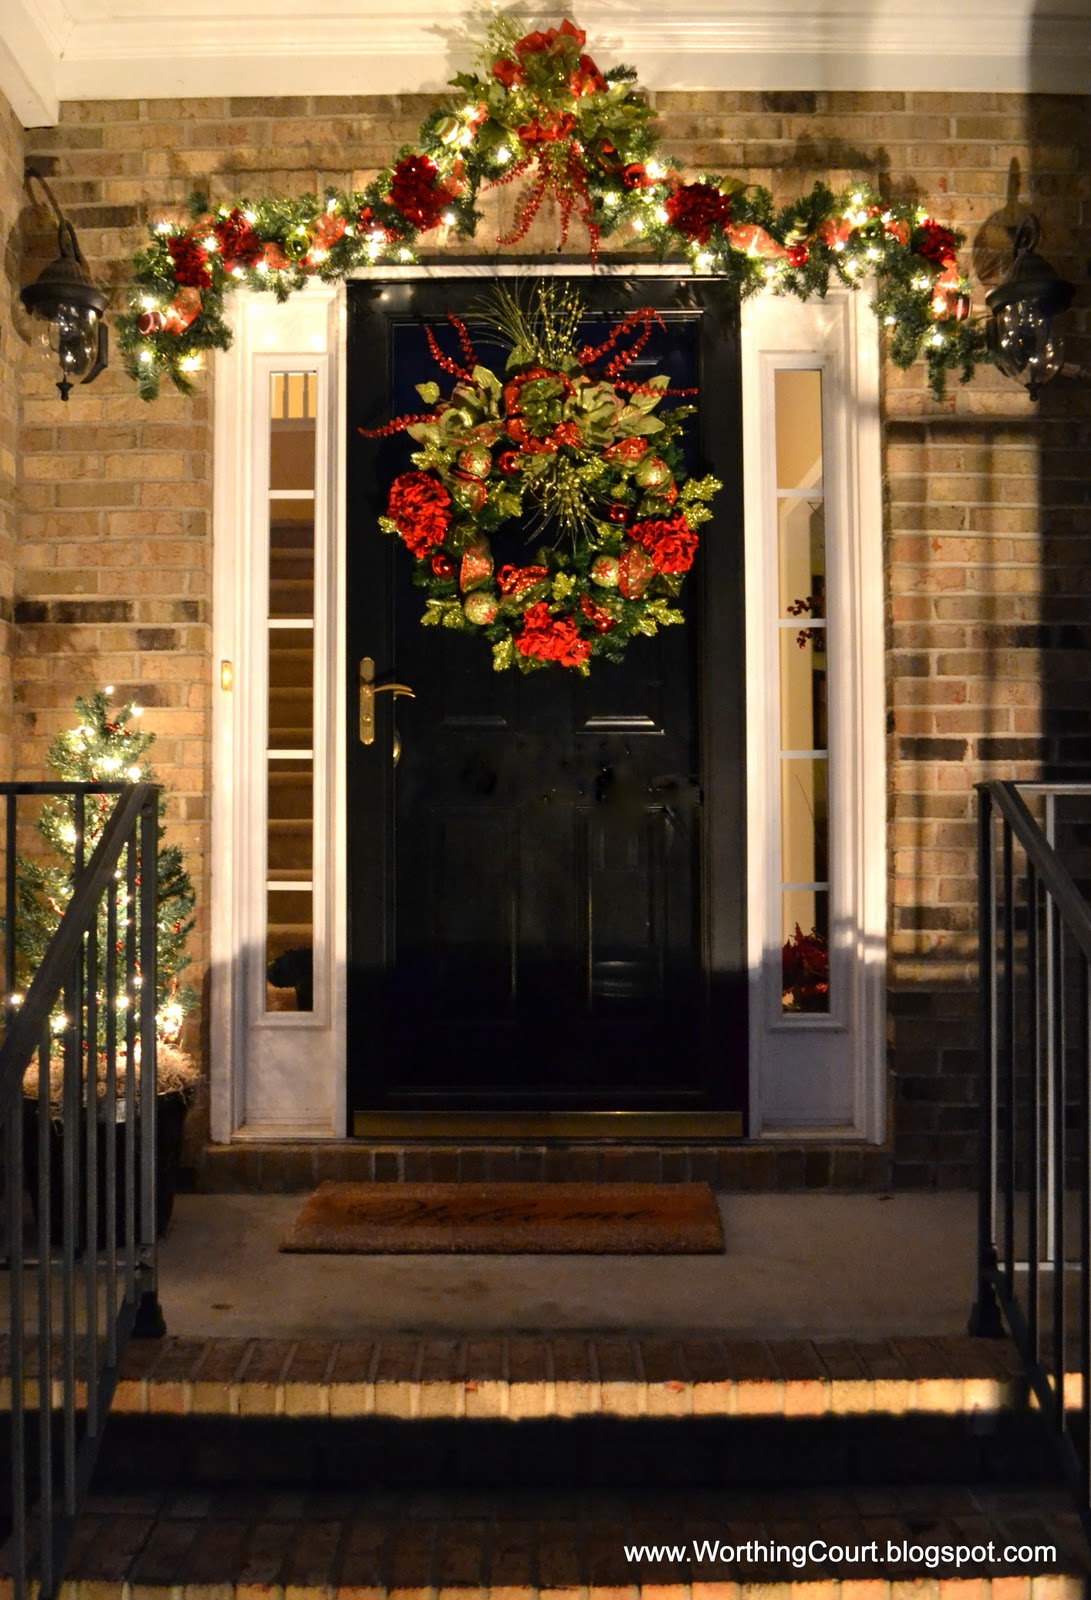 Popular Christmas Outdoors | Worthing Court DD24